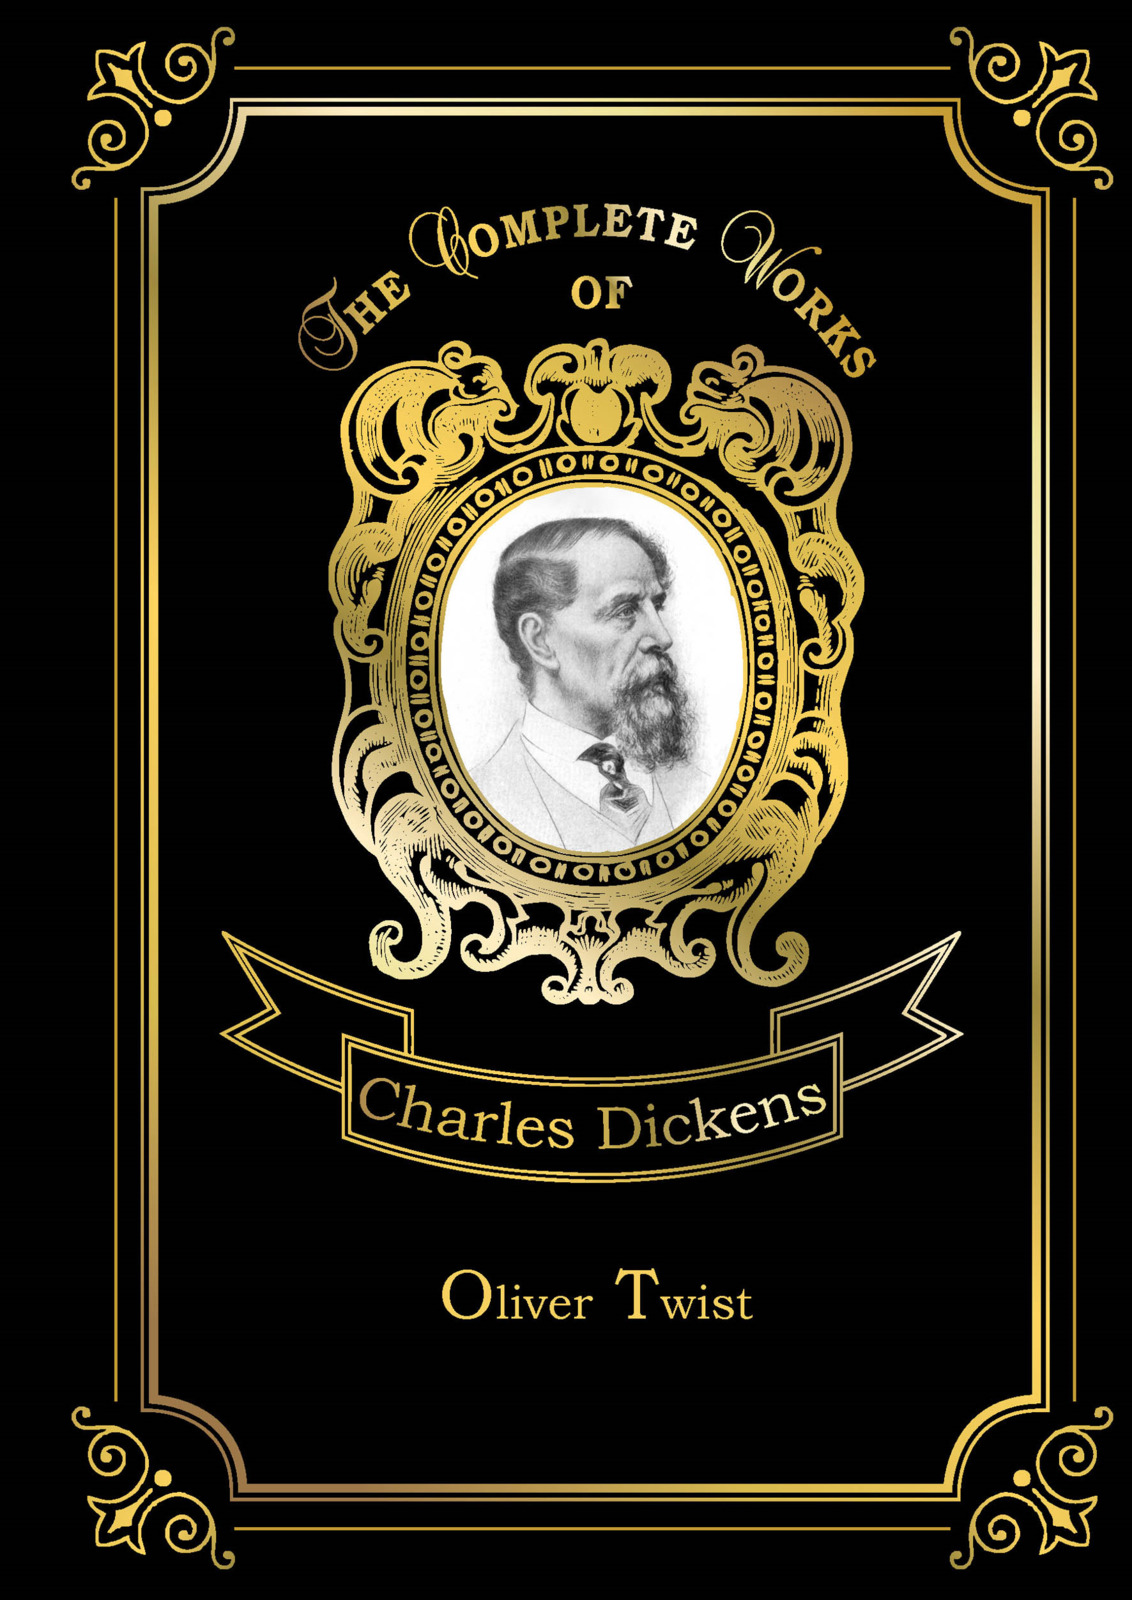 Charles Dickens Oliver Twist barrow tzs1 a02 yklzs1 t01 g1 4 white black silver gold acrylic water cooling plug coins can be used to twist the